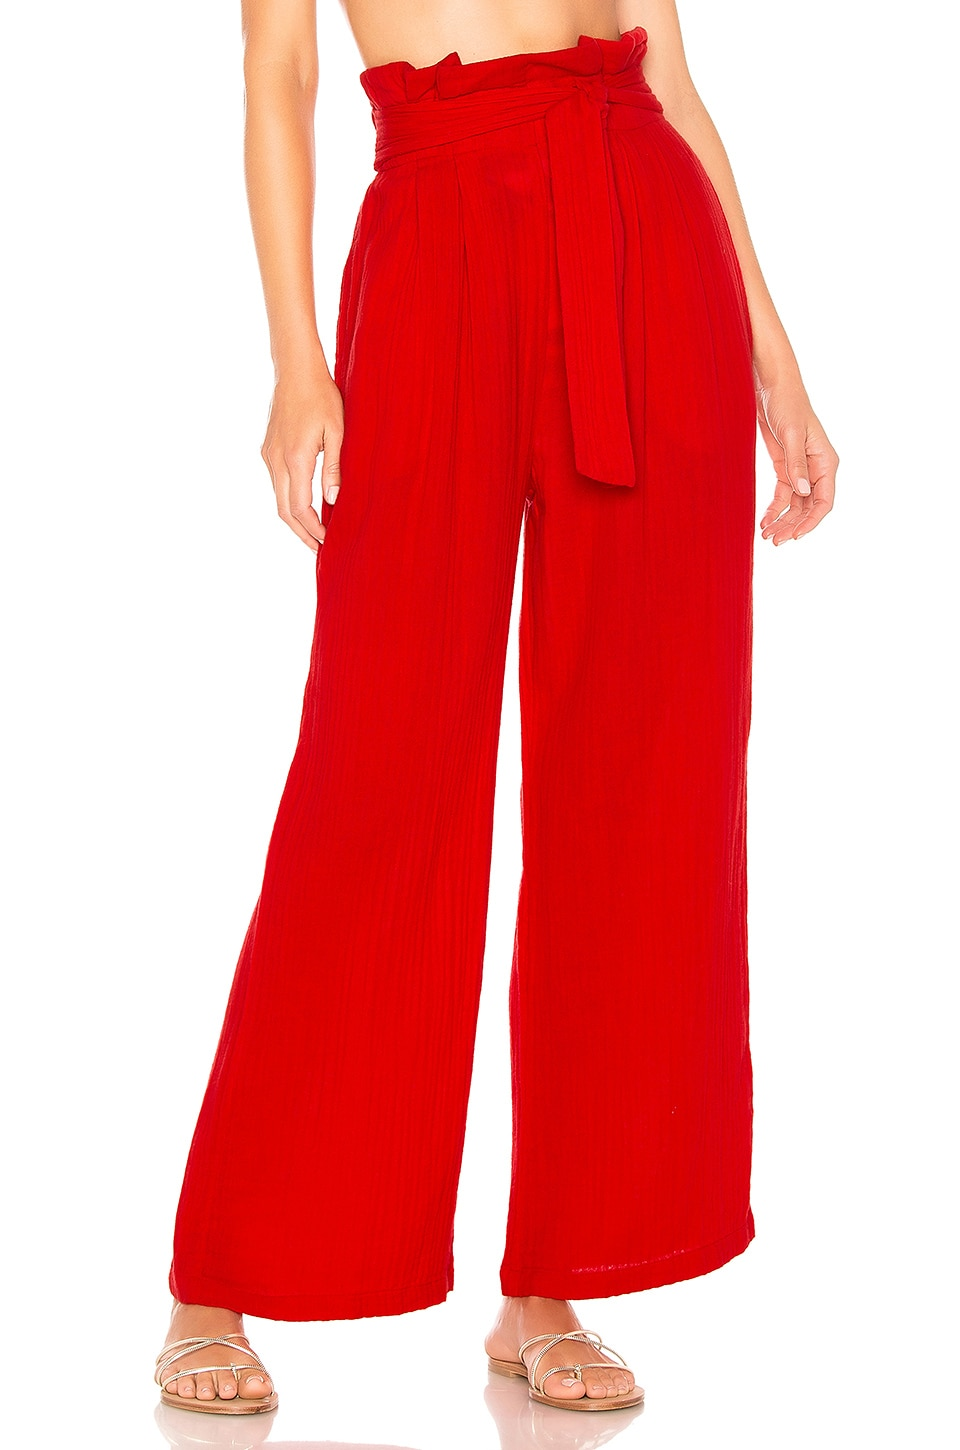 Mara Hoffman Arianna Pant in Red